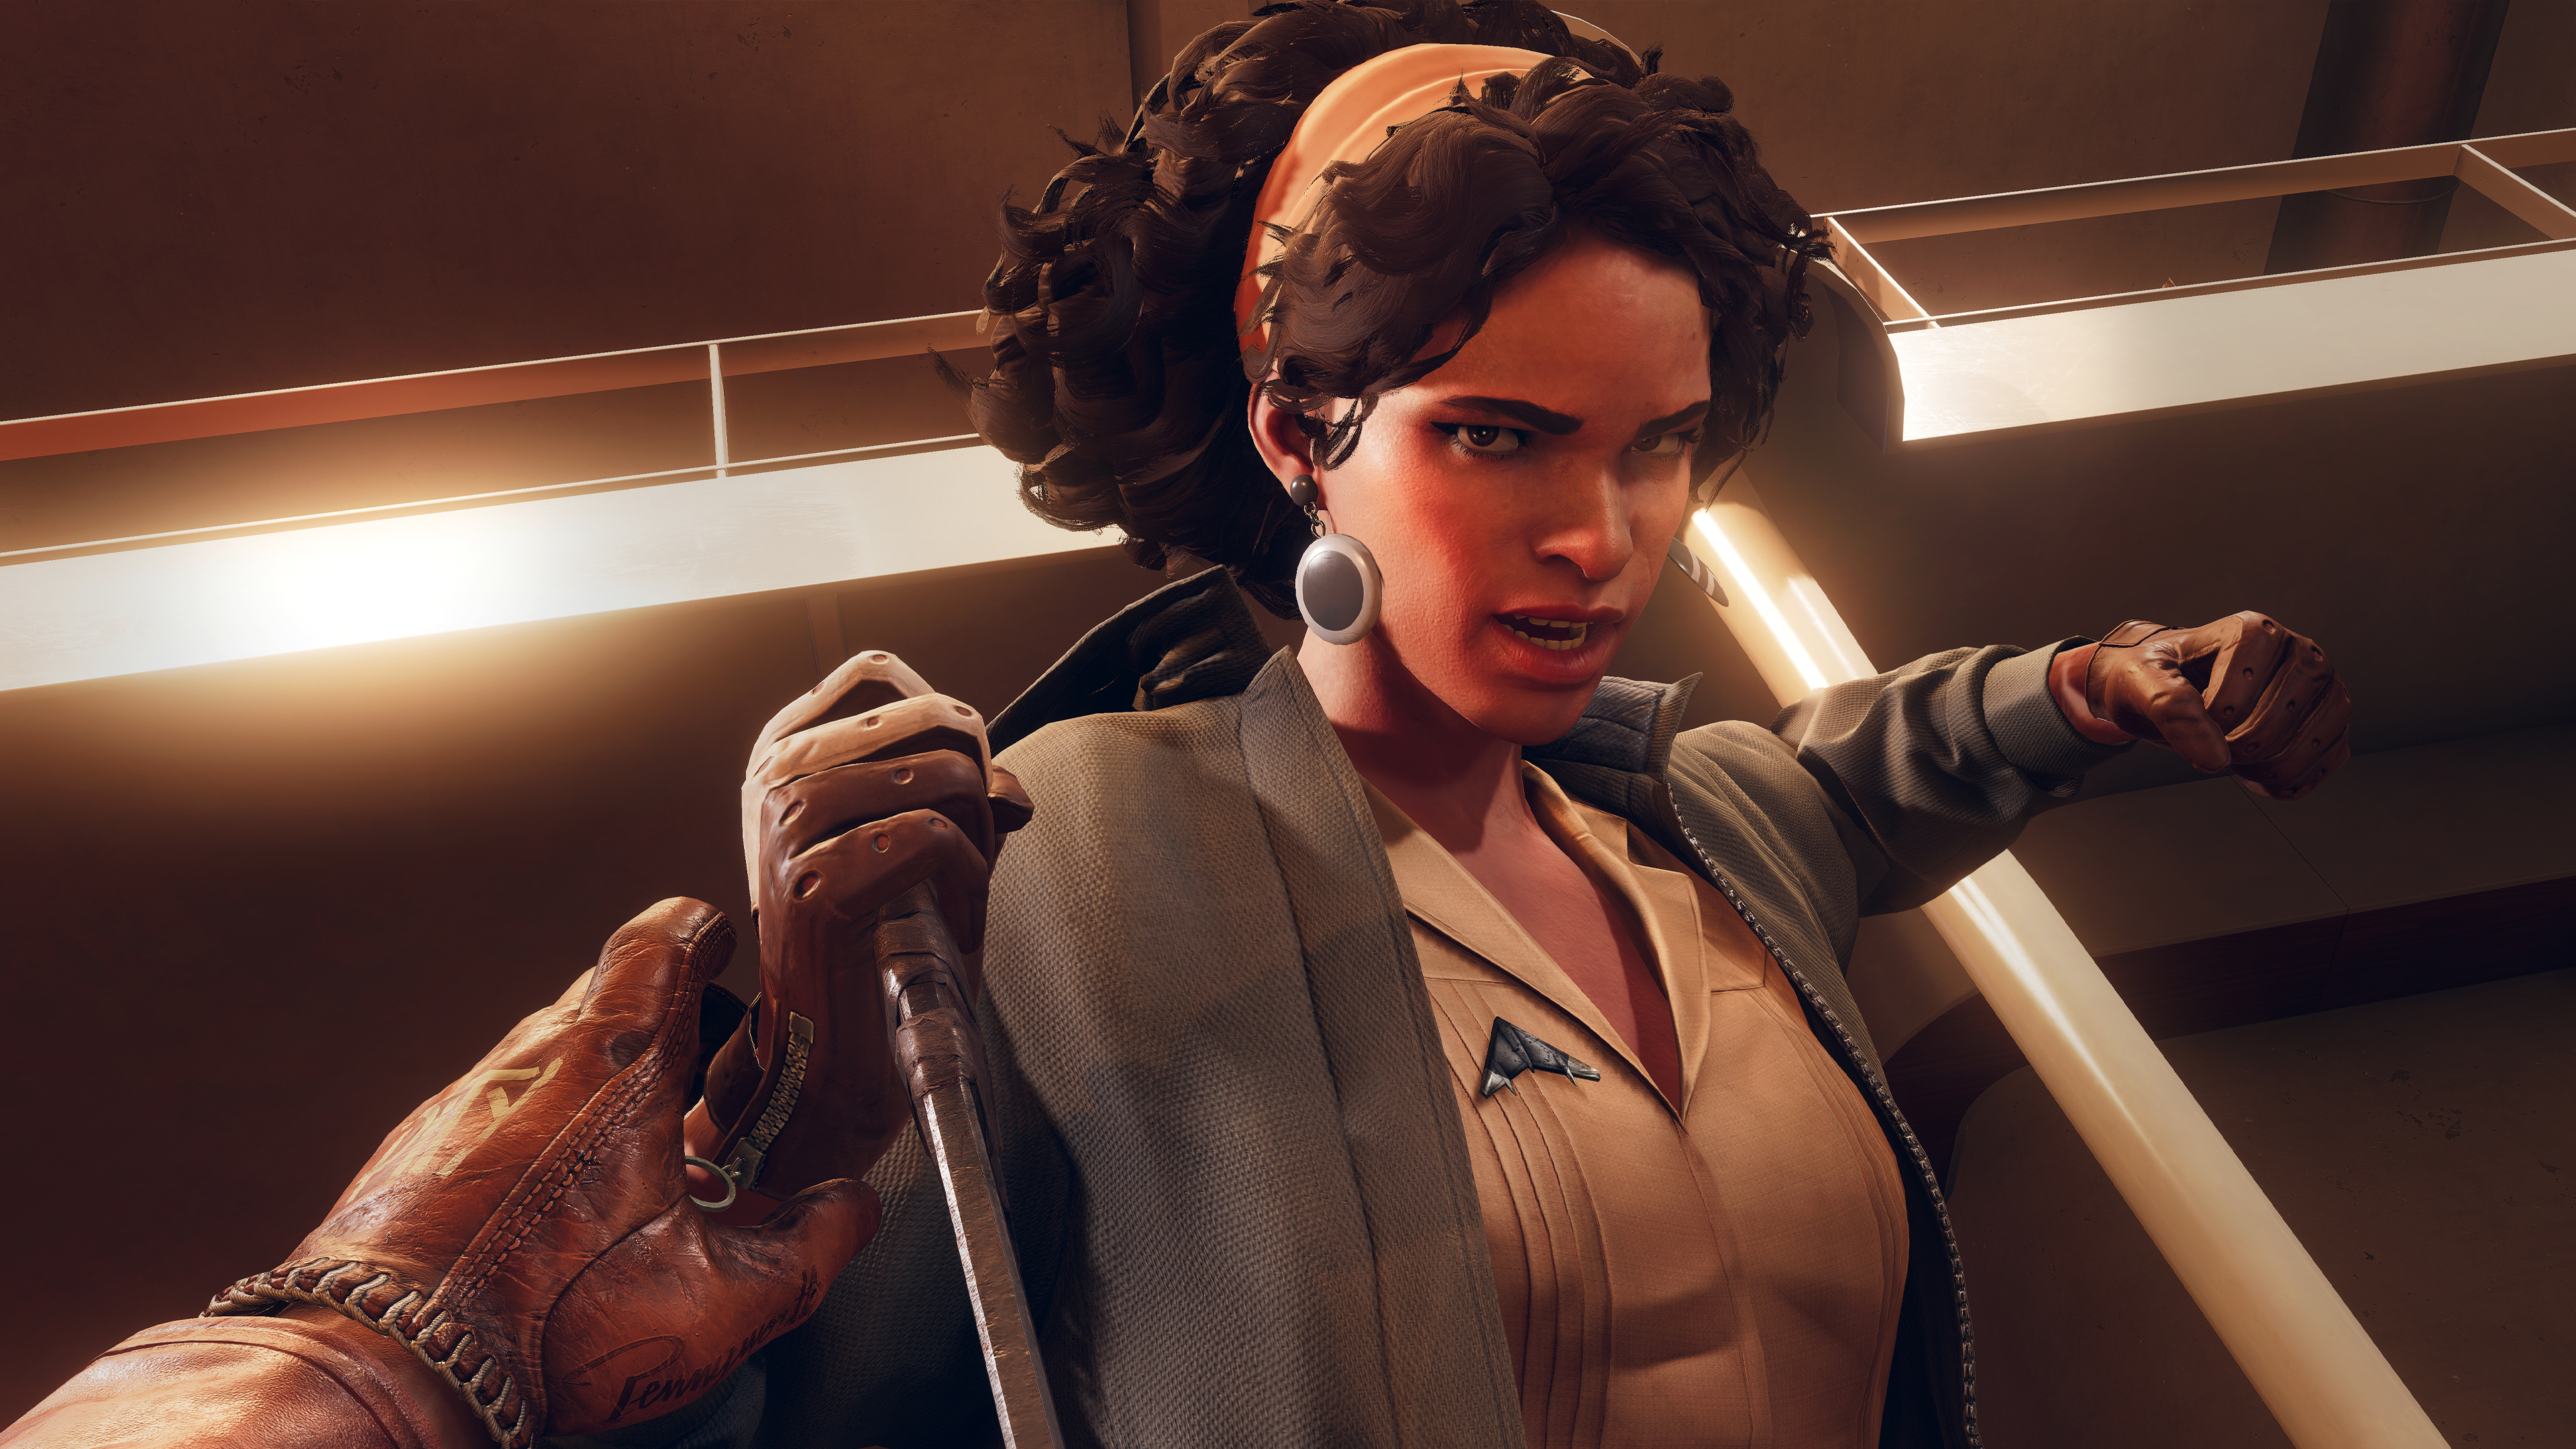 Julianna pulls back to swing at the player, Cole, in a screenshot from Deathloop